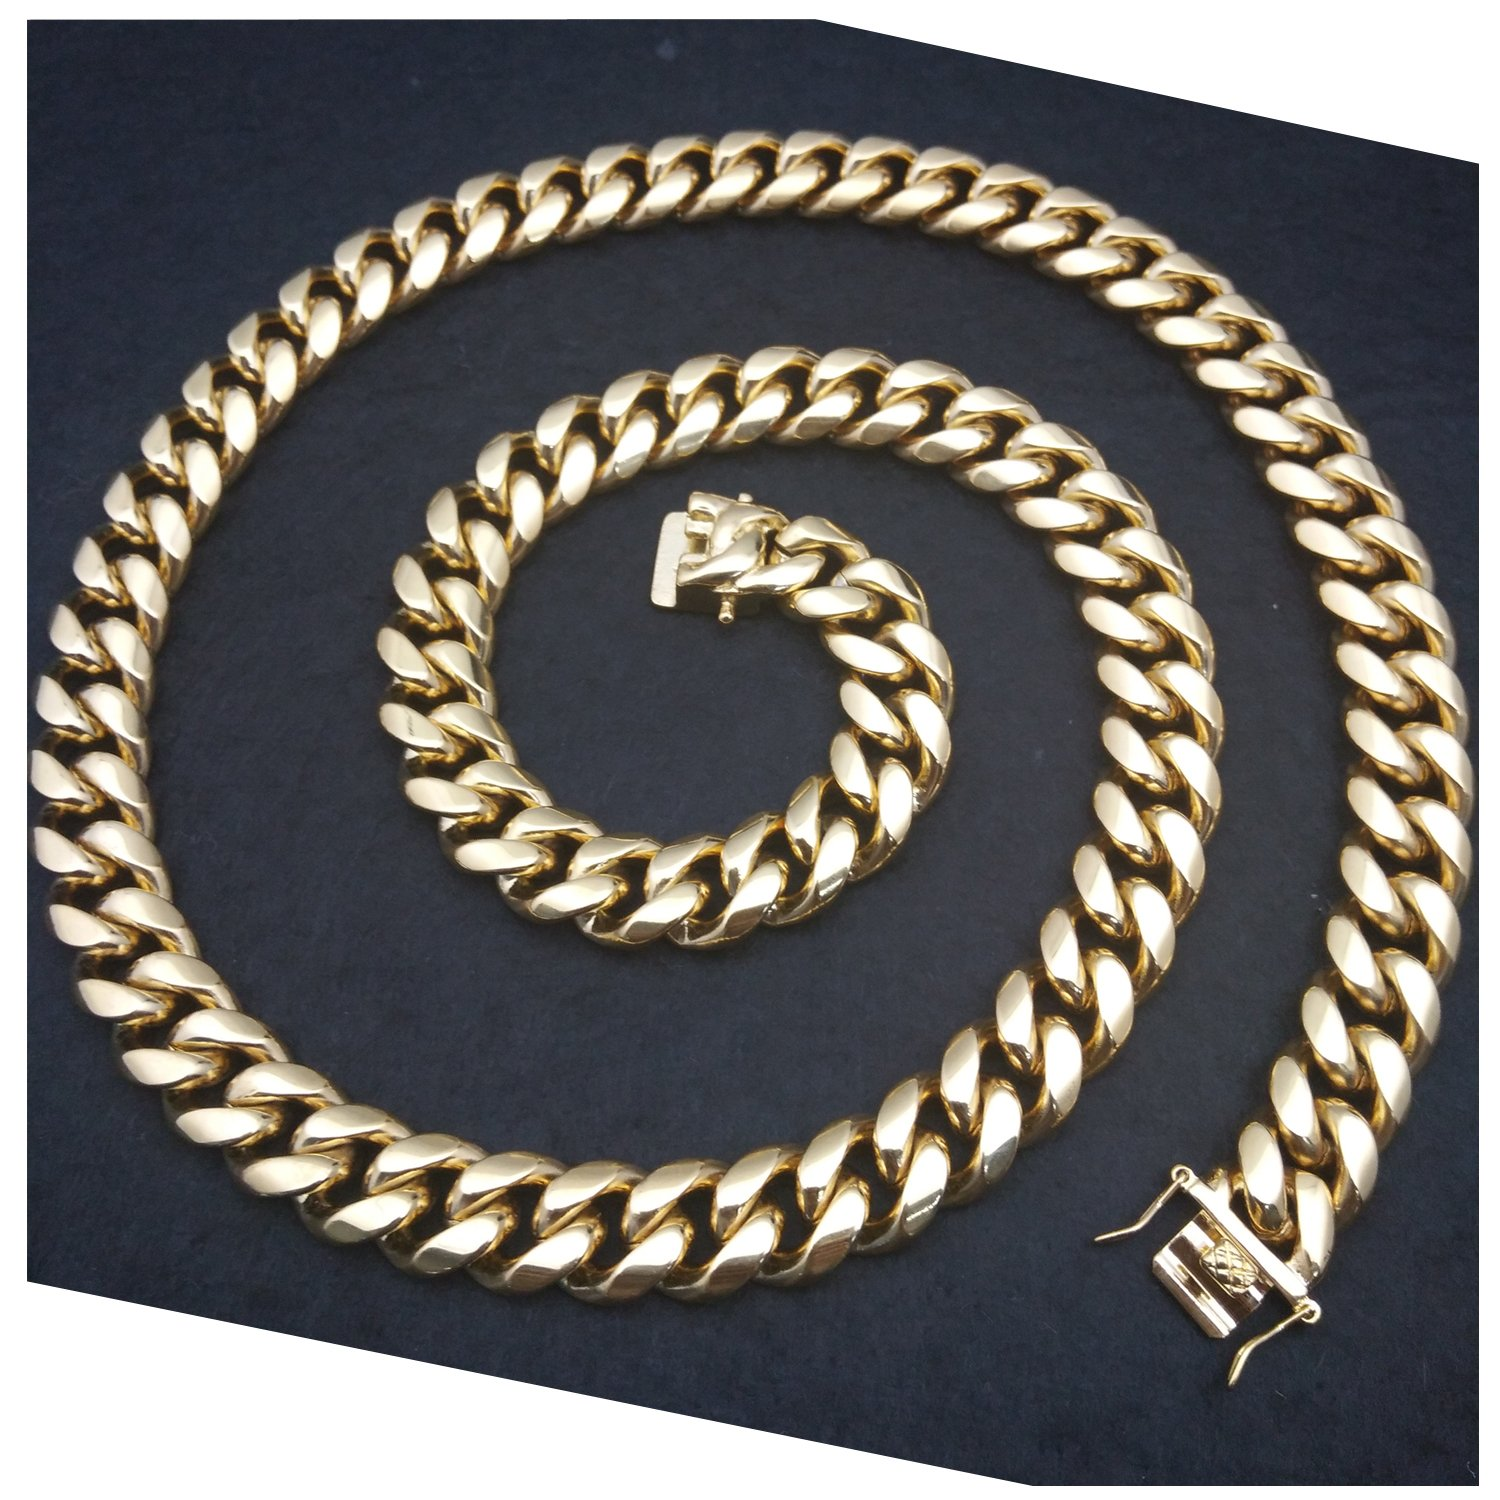 Gold Chain Necklace 12MM,Heavy 24K Smooth Miami Cuban Link Solid Premium Men Pendant Jewelry (24)